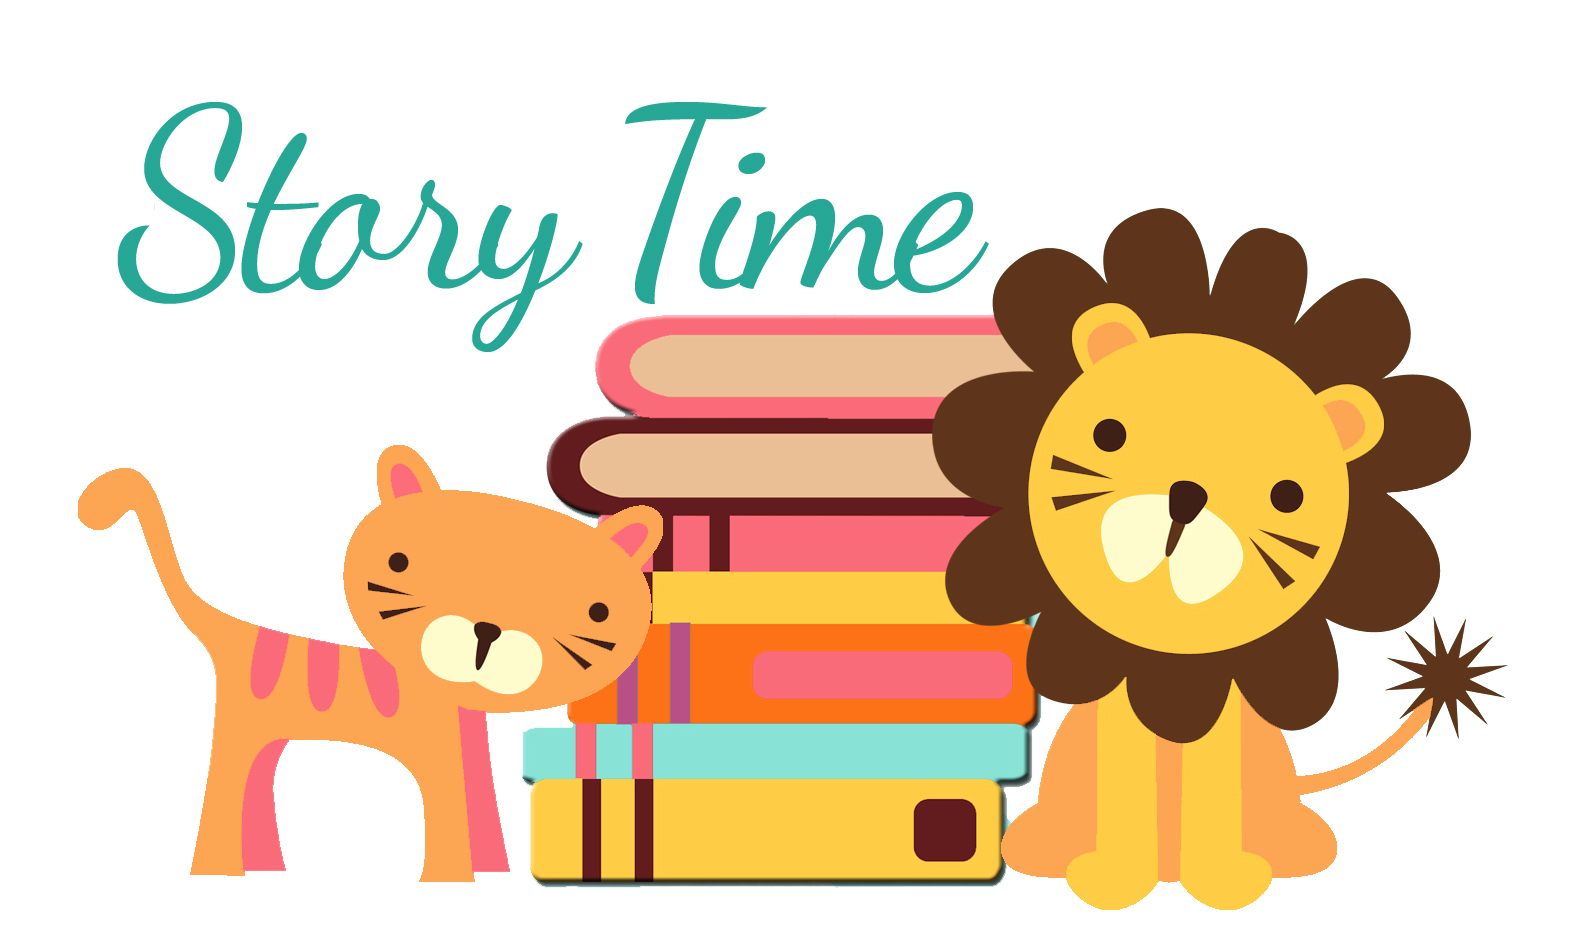 Story Time image 2